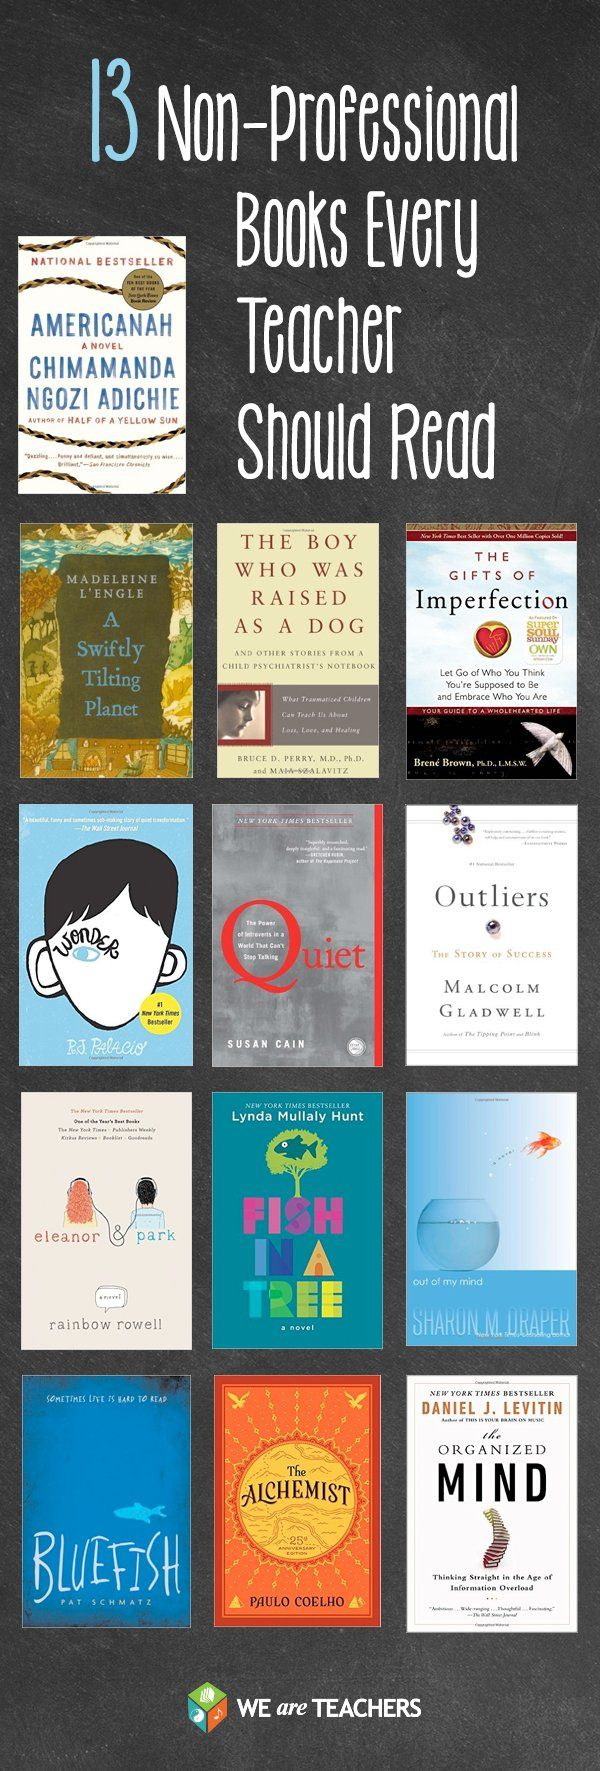 """Sabrina Tyrer on Twitter: """"13 Non-Professional Books every teacher should read"""